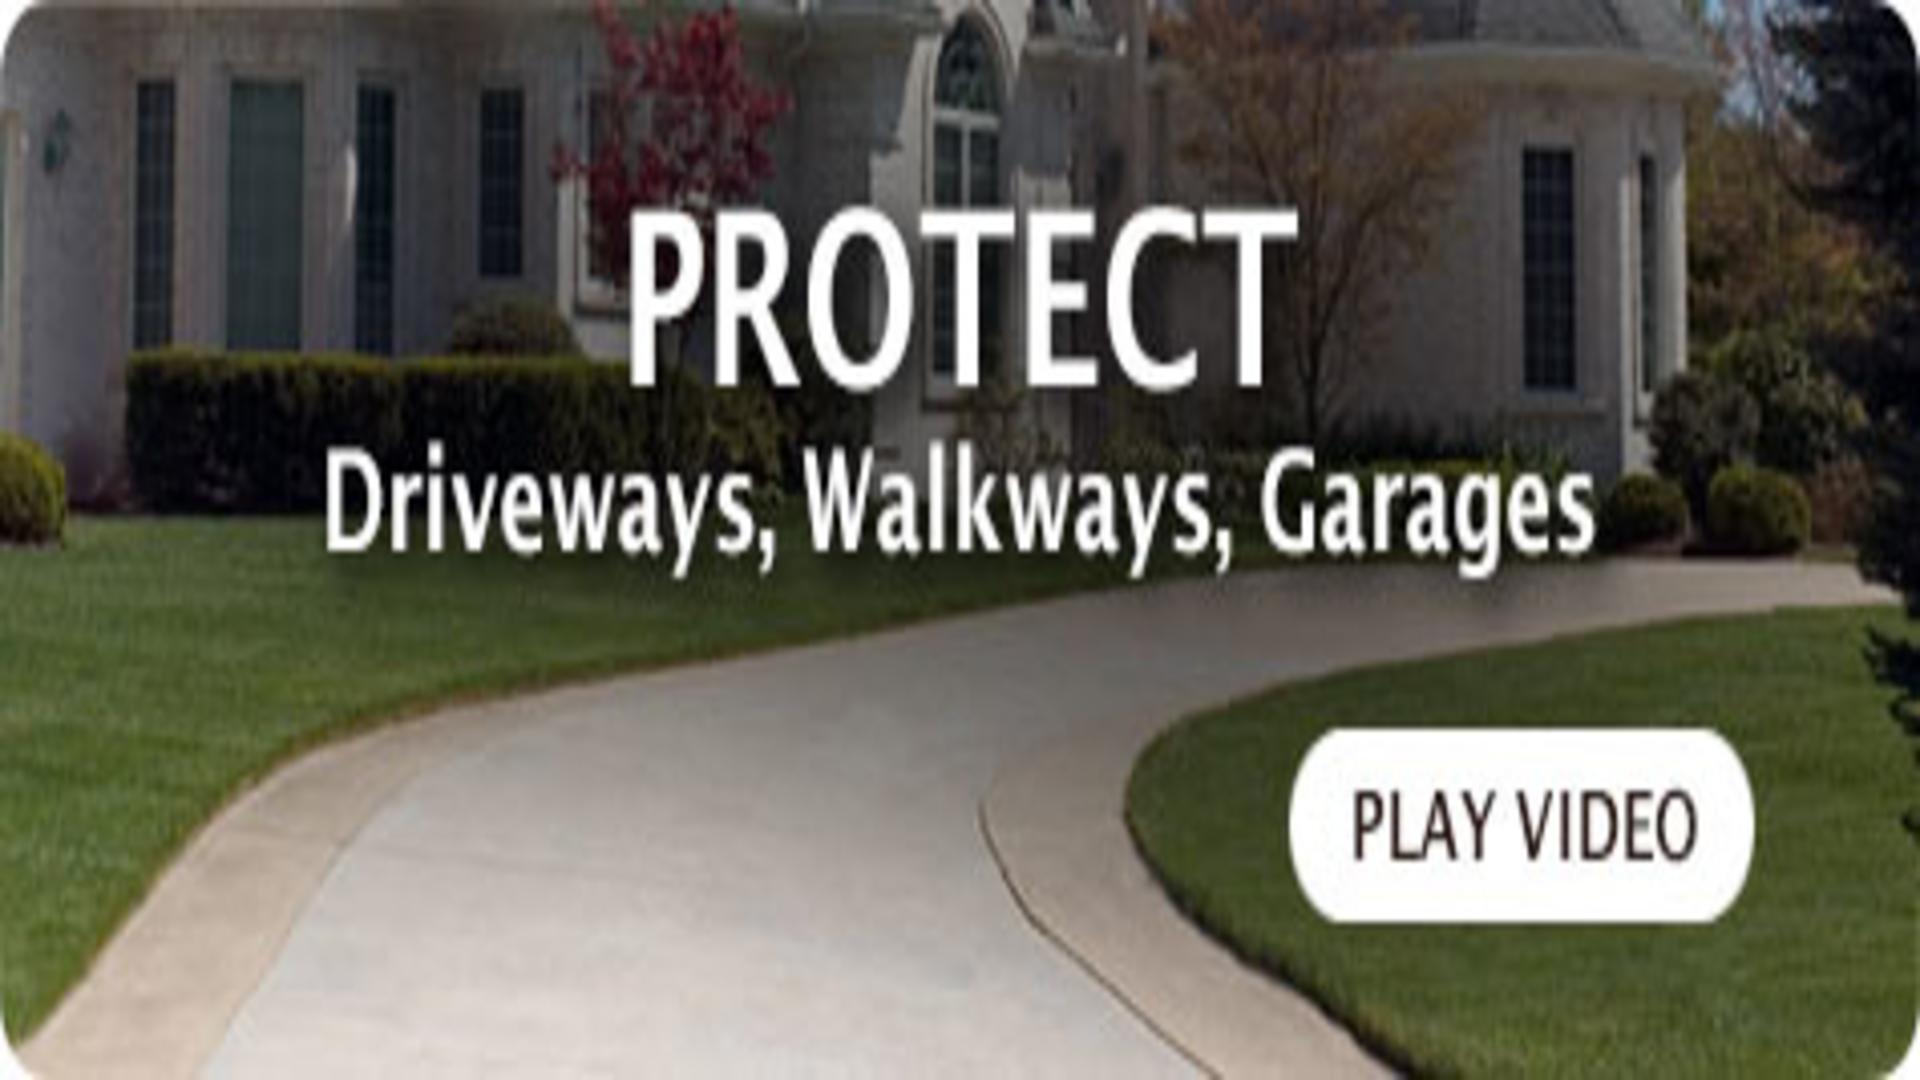 ChemMasters Protects Driveways, Walkways and Garages